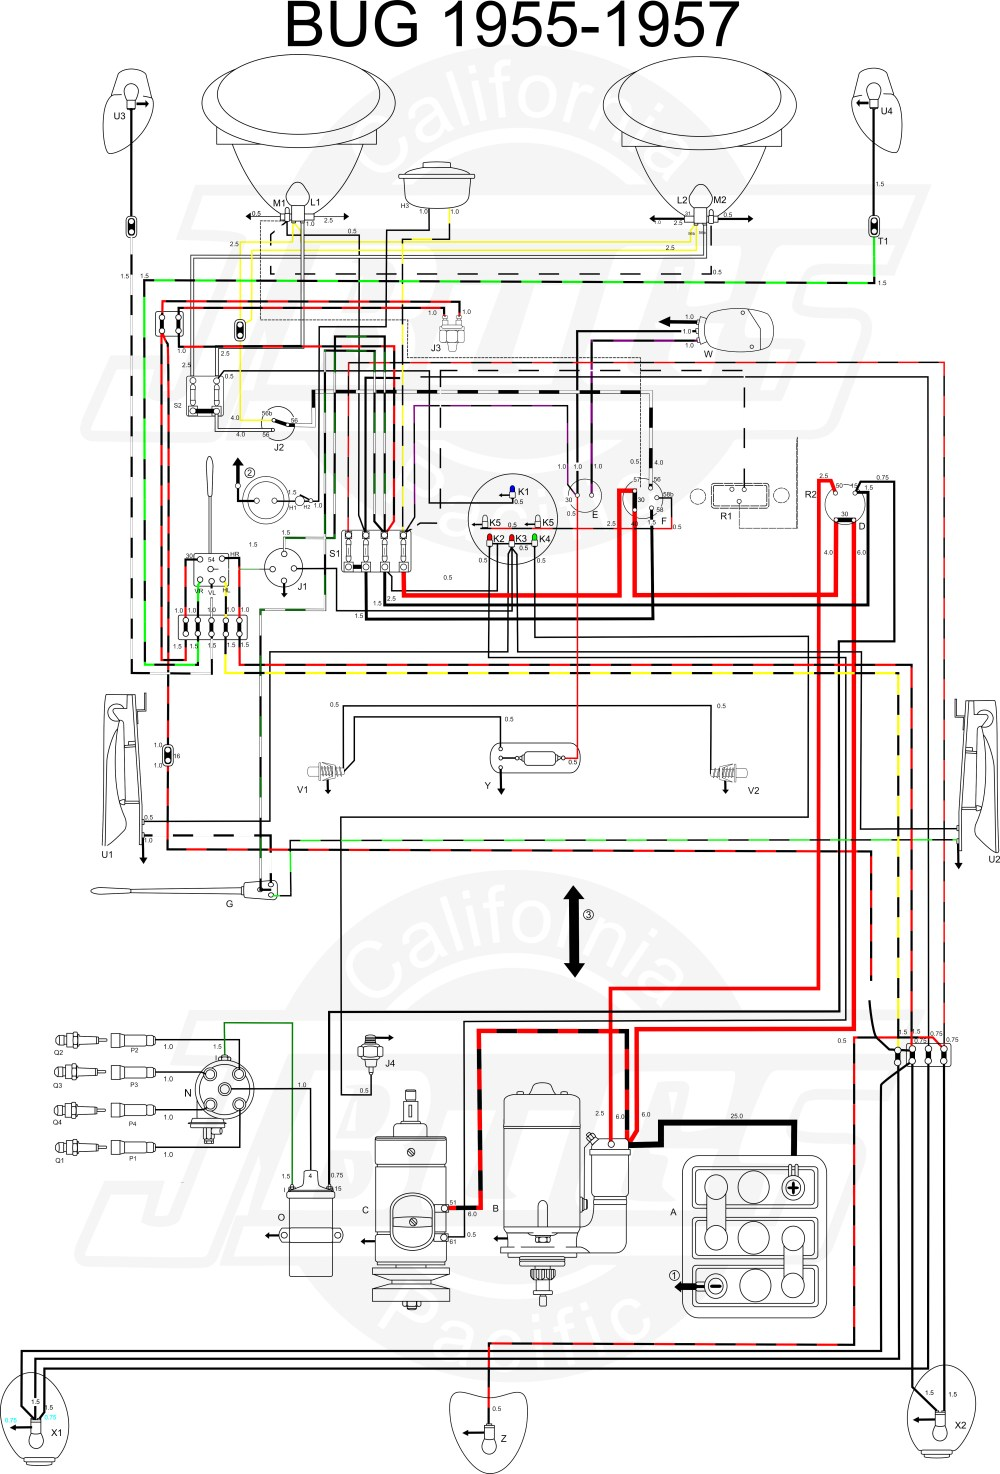 medium resolution of 74 beetle backup lights wiring harness wiring diagram img 74 beetle backup lights wiring harness